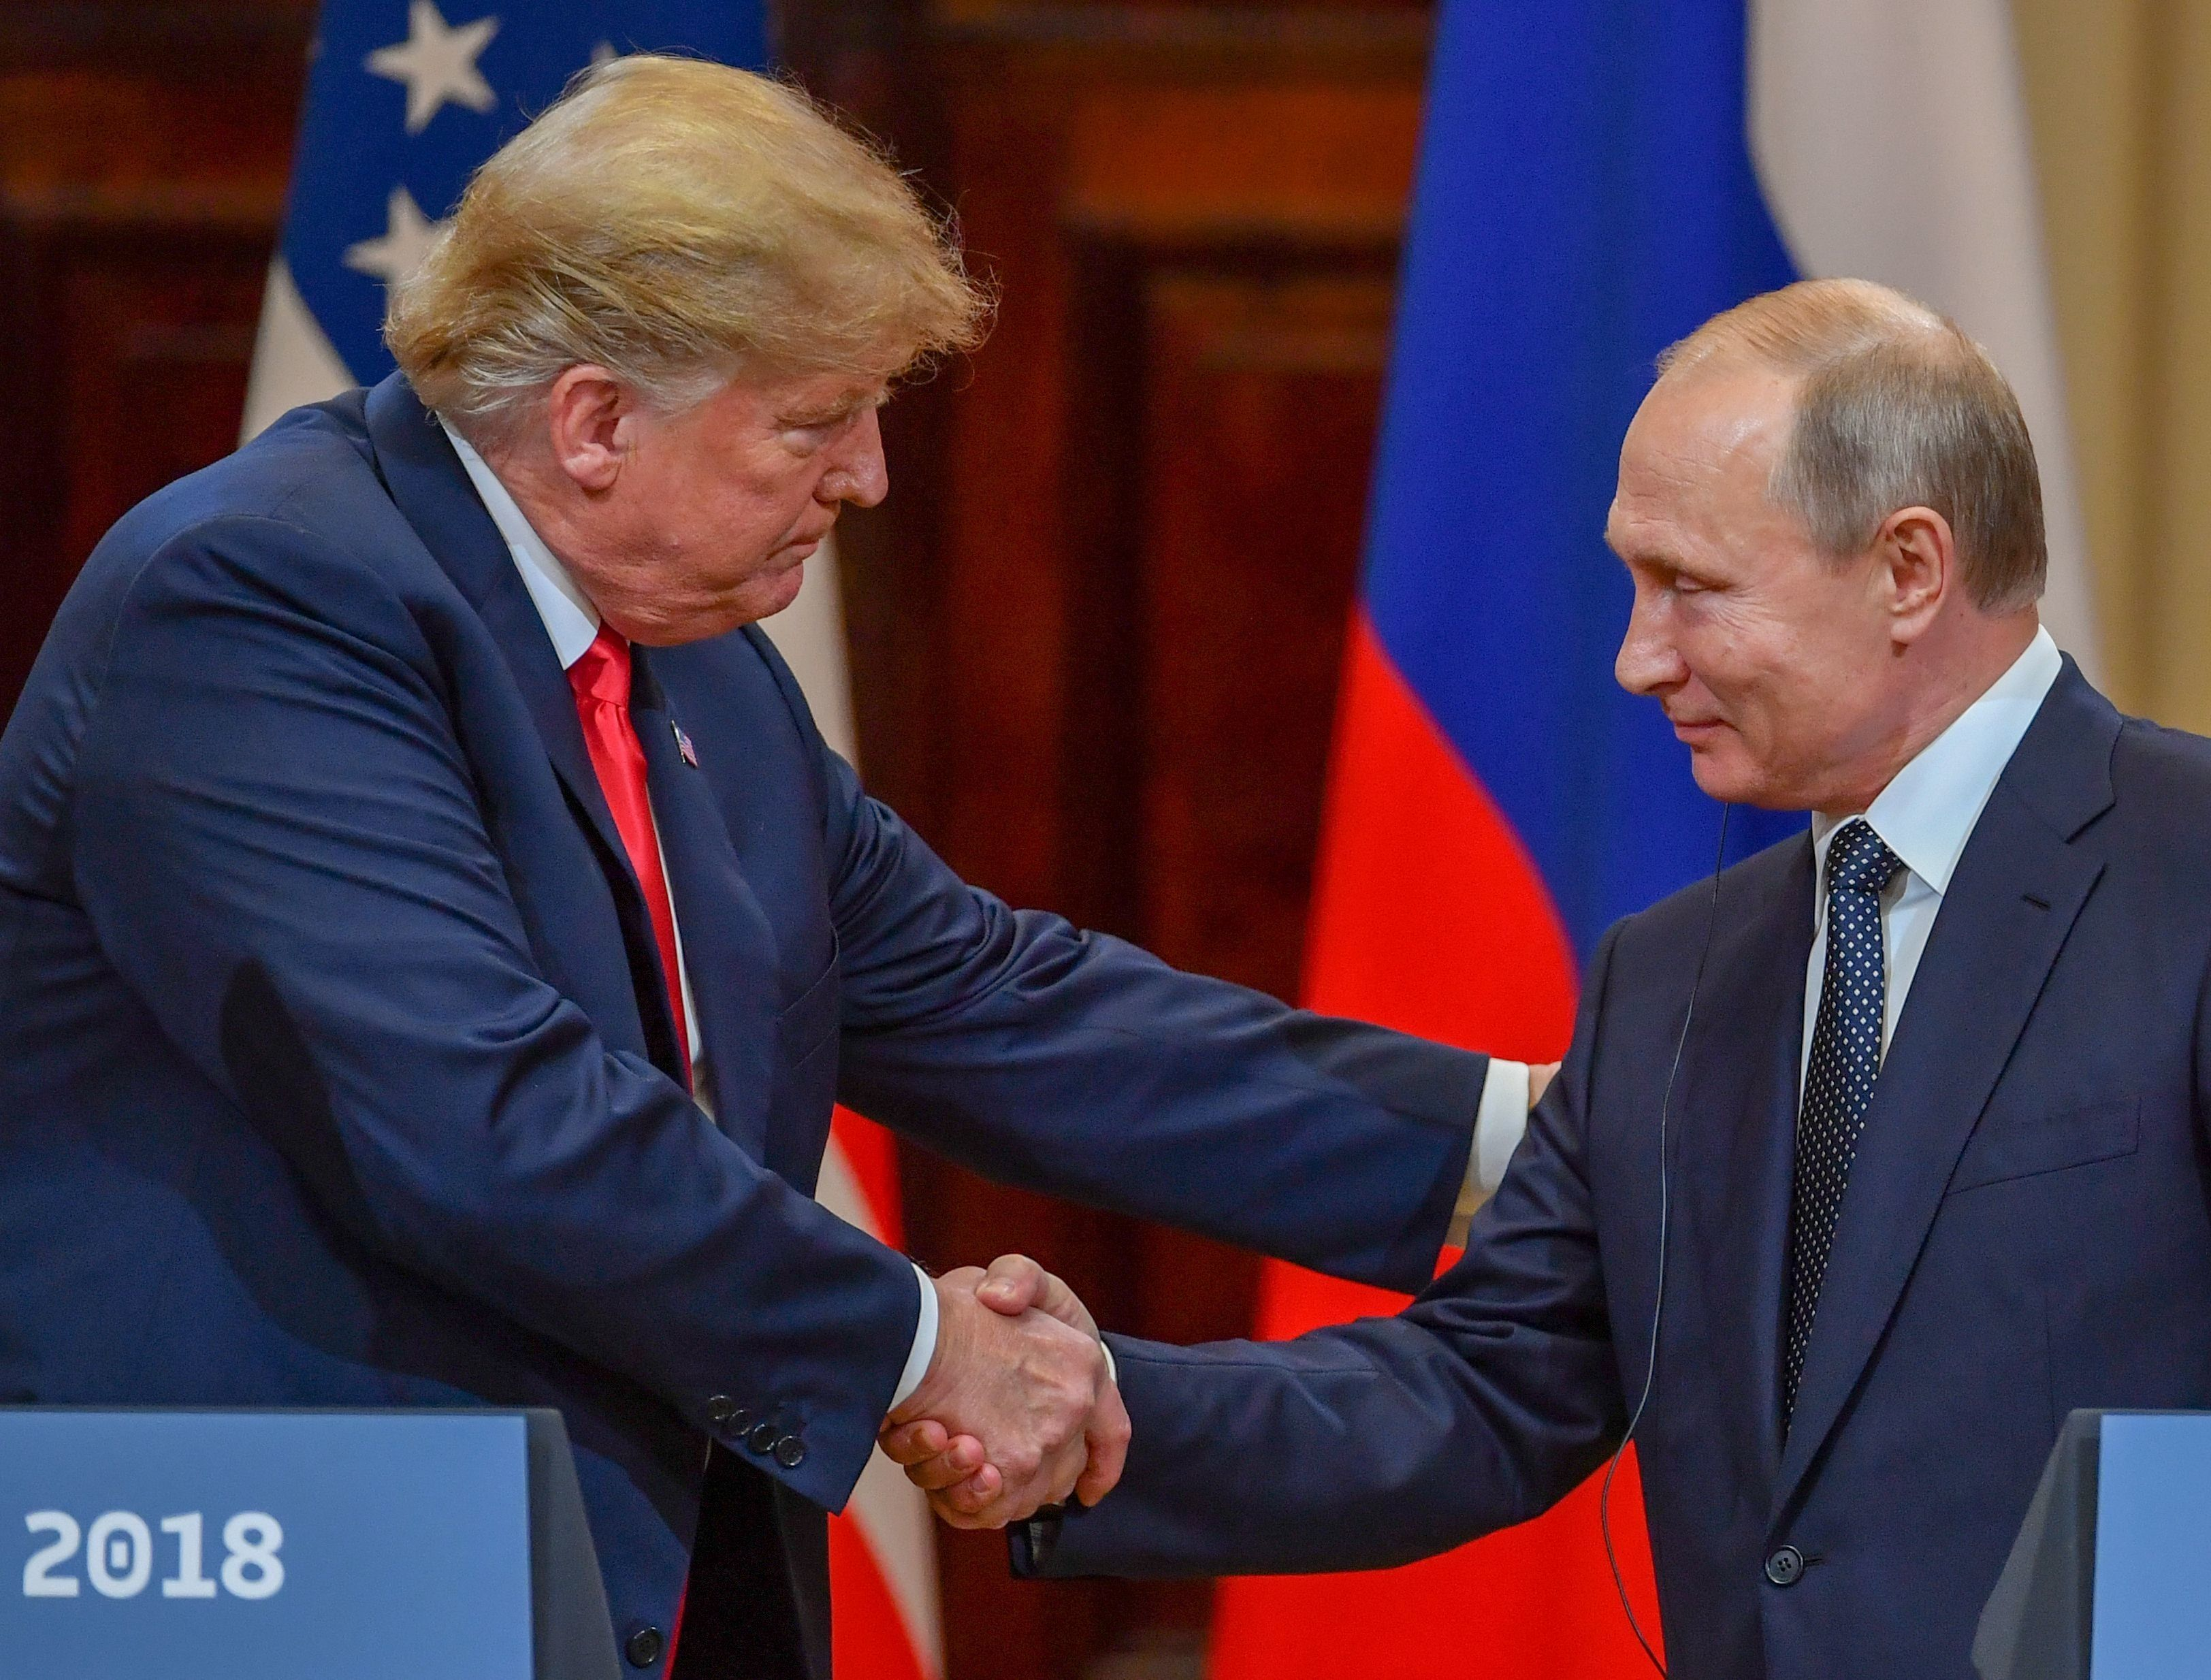 Donald Trump and Vladimir Putin shake hands after a meeting in Helsinki, Finland, on July 16.